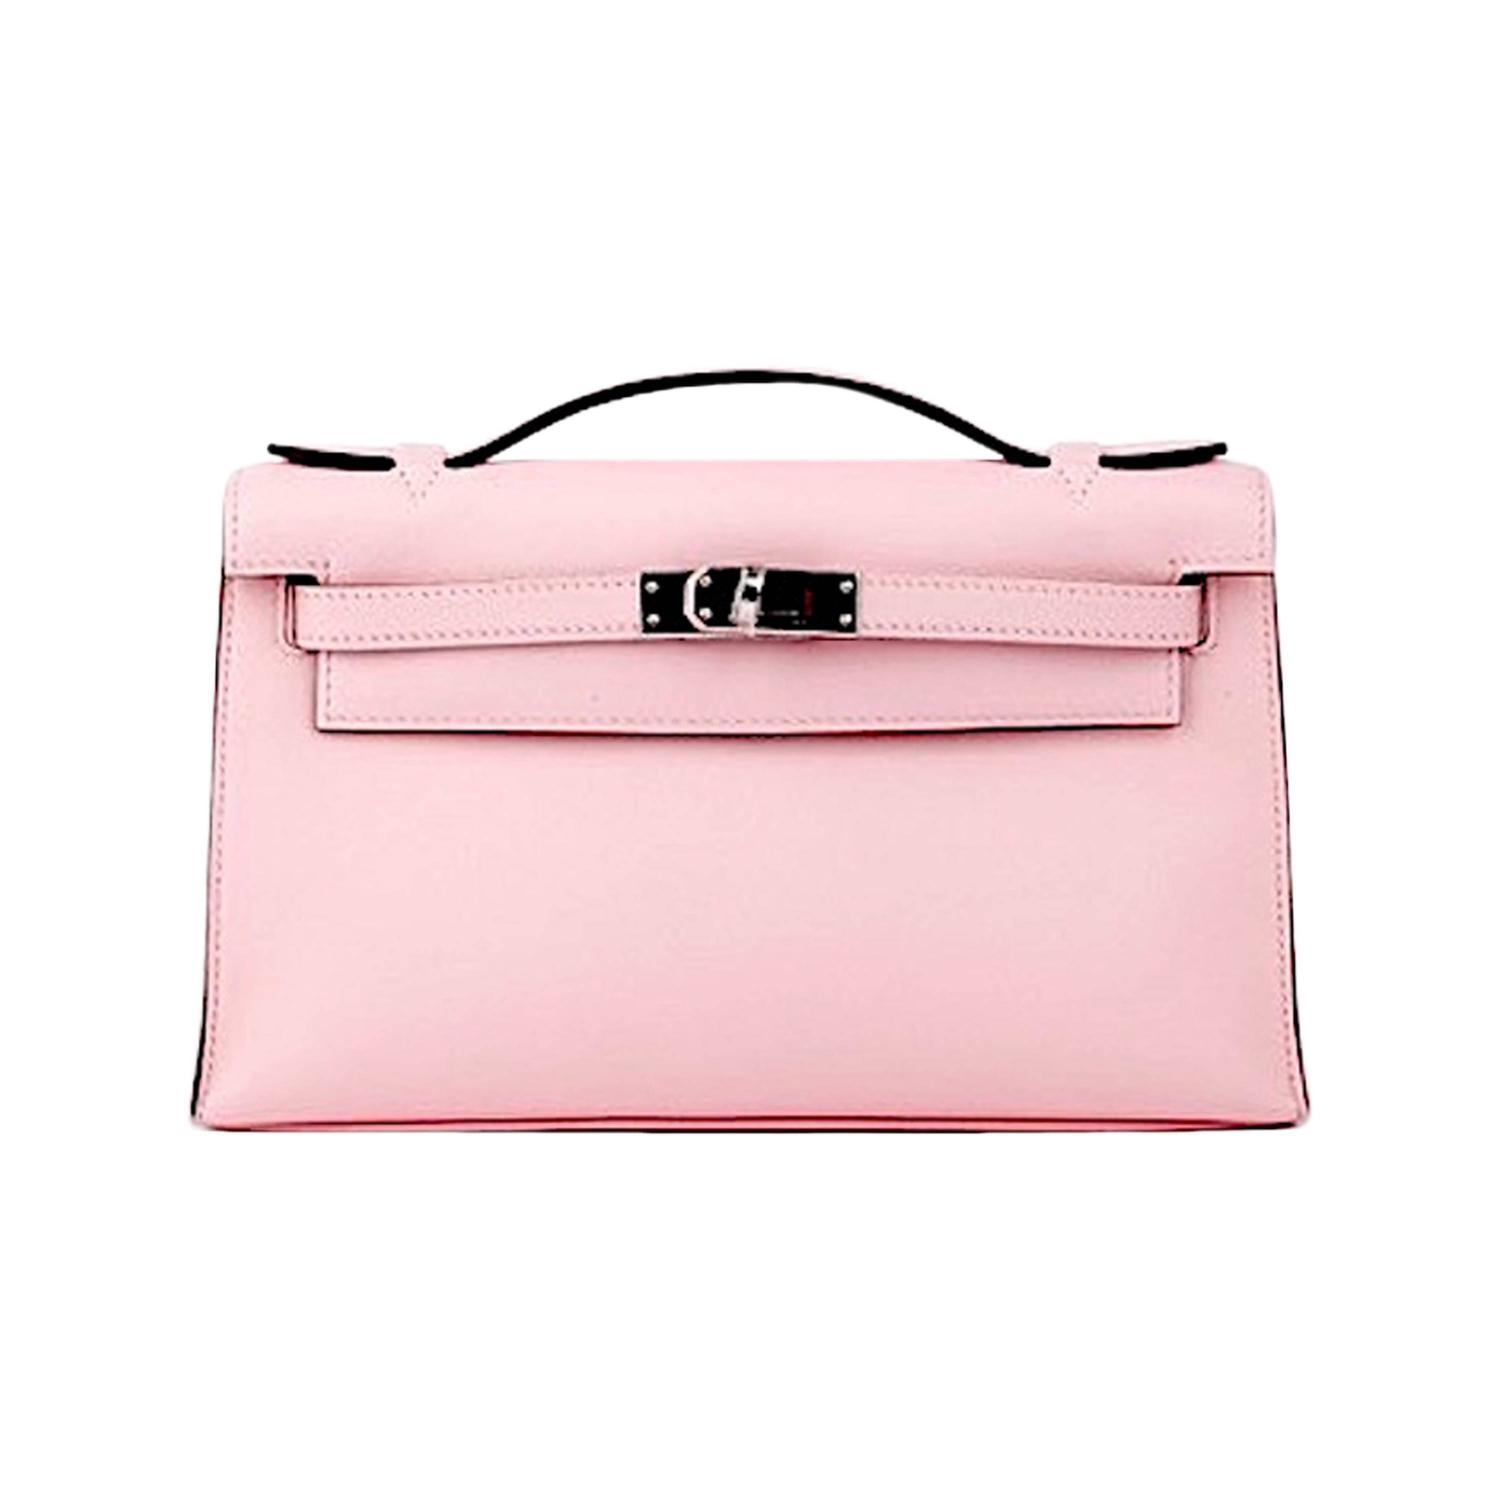 affordable replica handbags - HERMES KELLY POCHETTE ROSE SAKURA SWIFT CLUTCH JaneFinds at 1stdibs